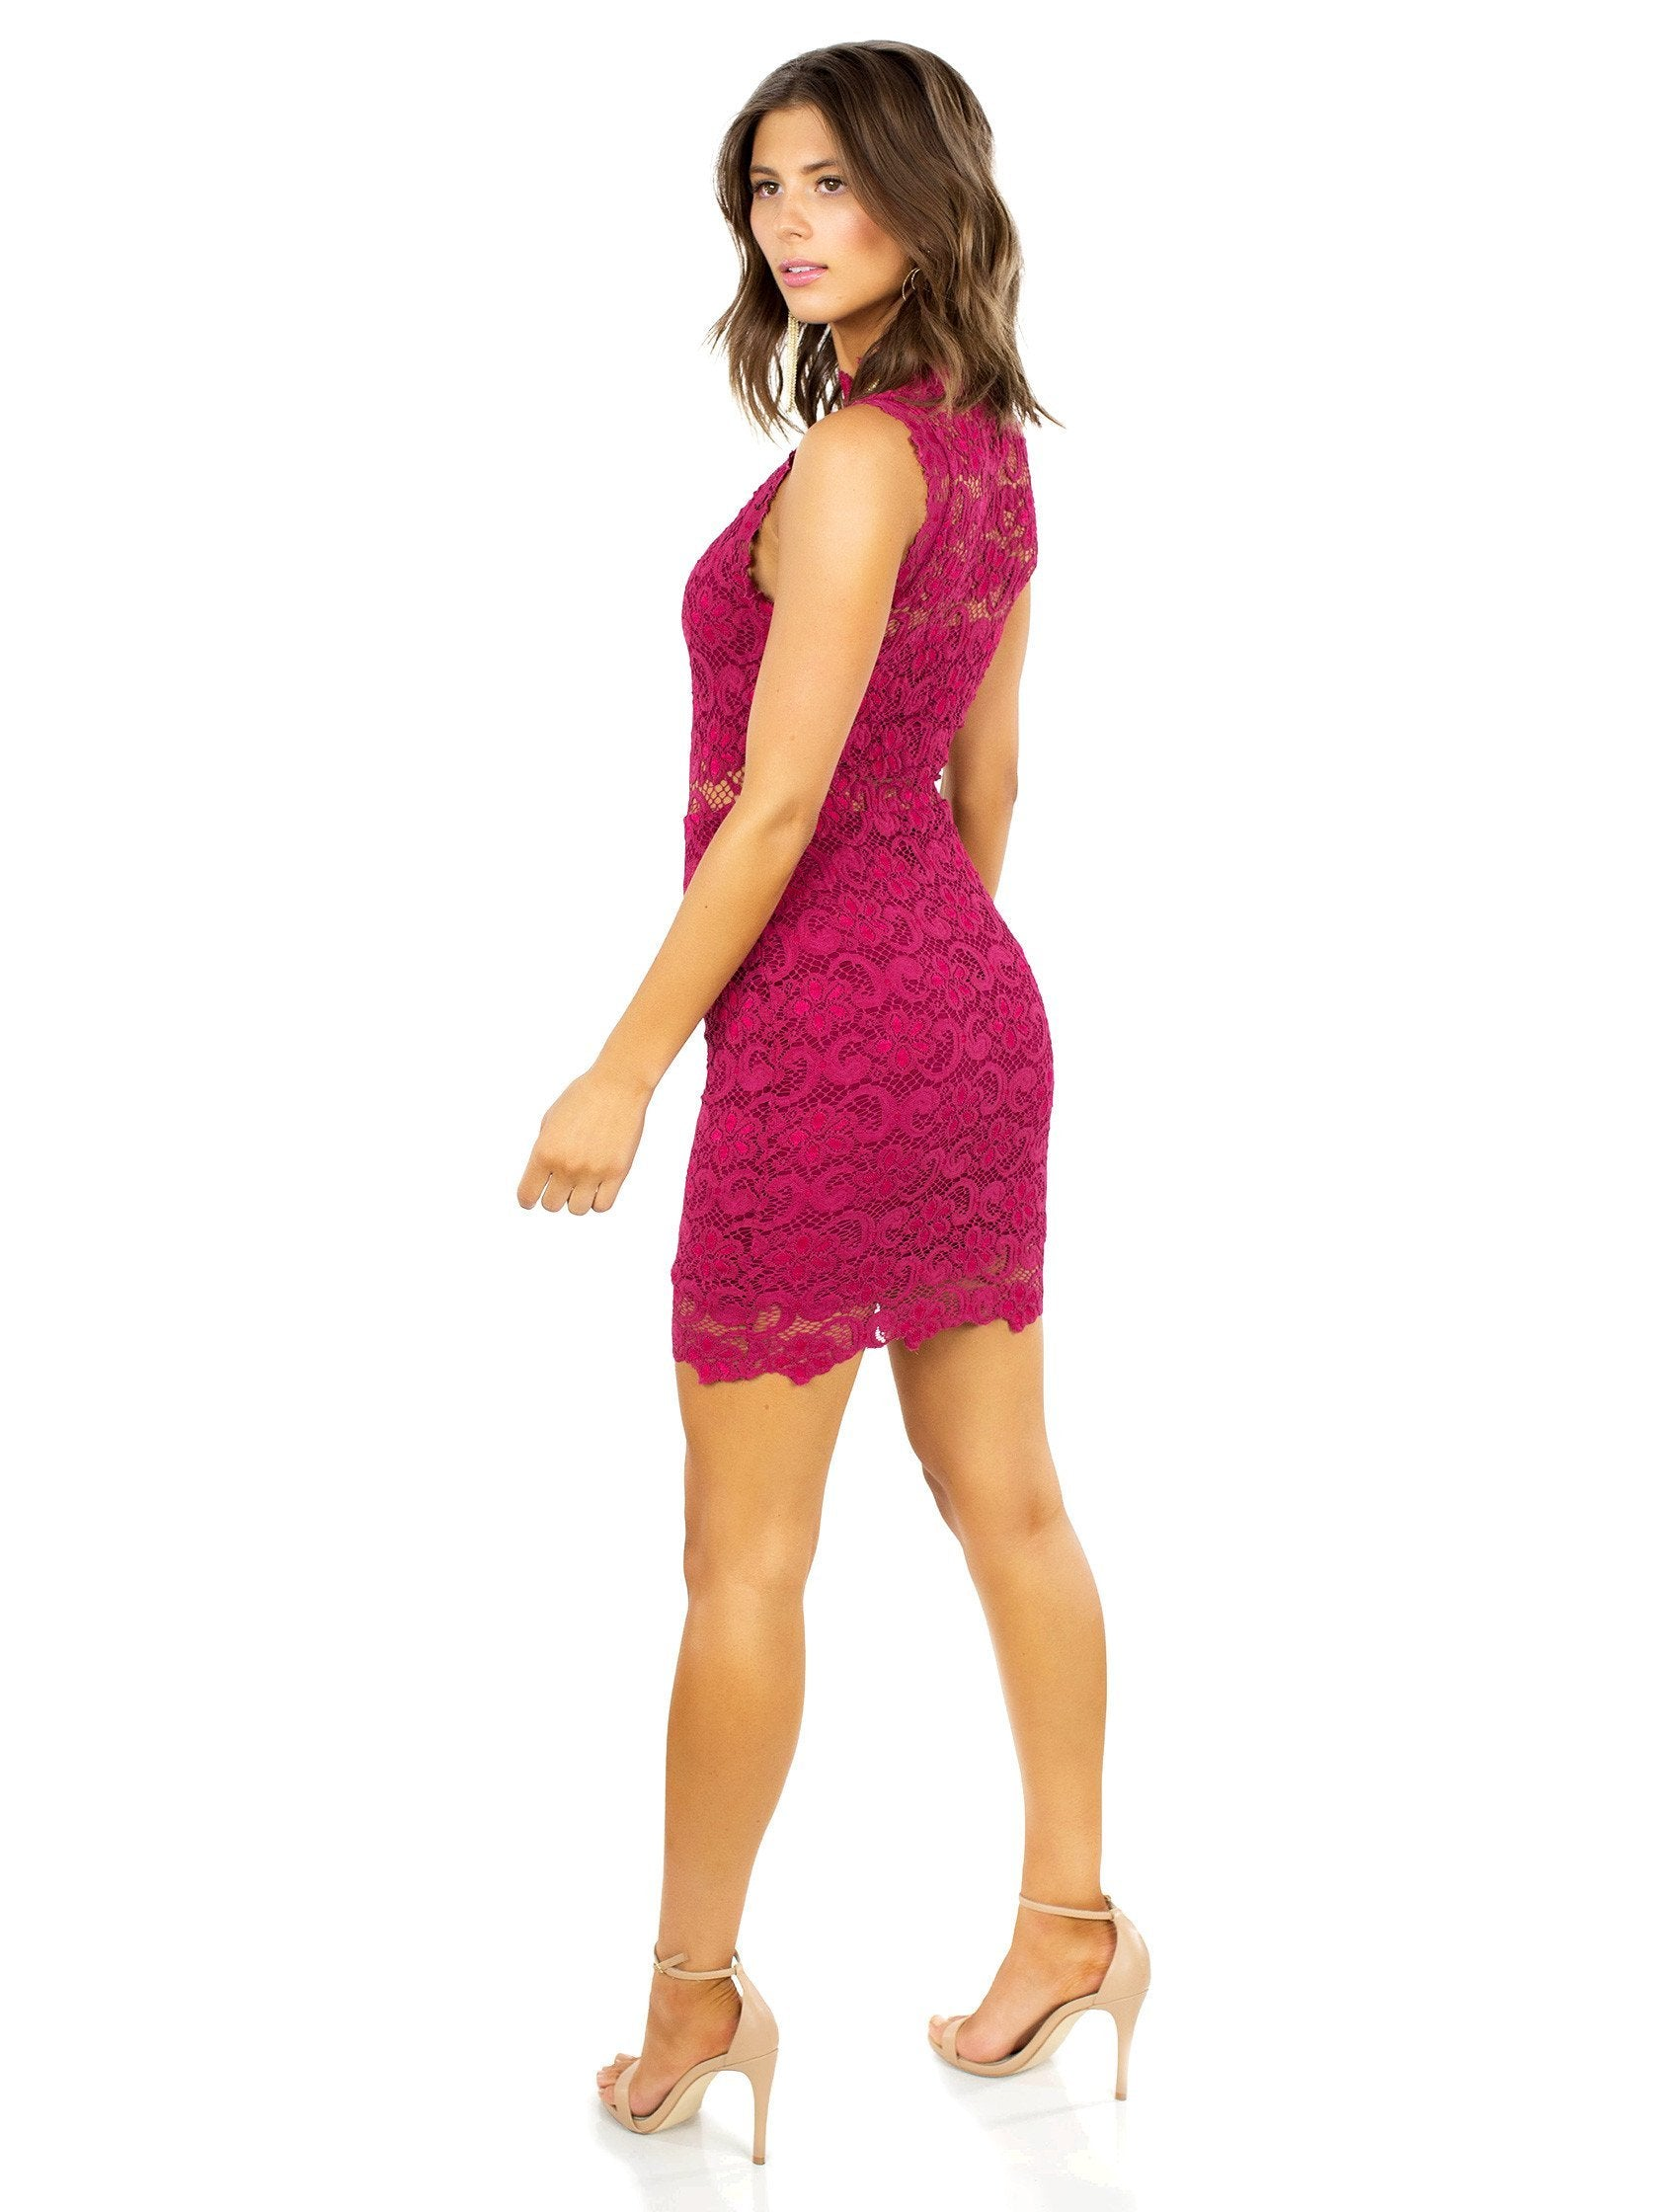 Woman wearing a dress rental from Nightcap Clothing called Dixie Lace Cutout Mini Dress